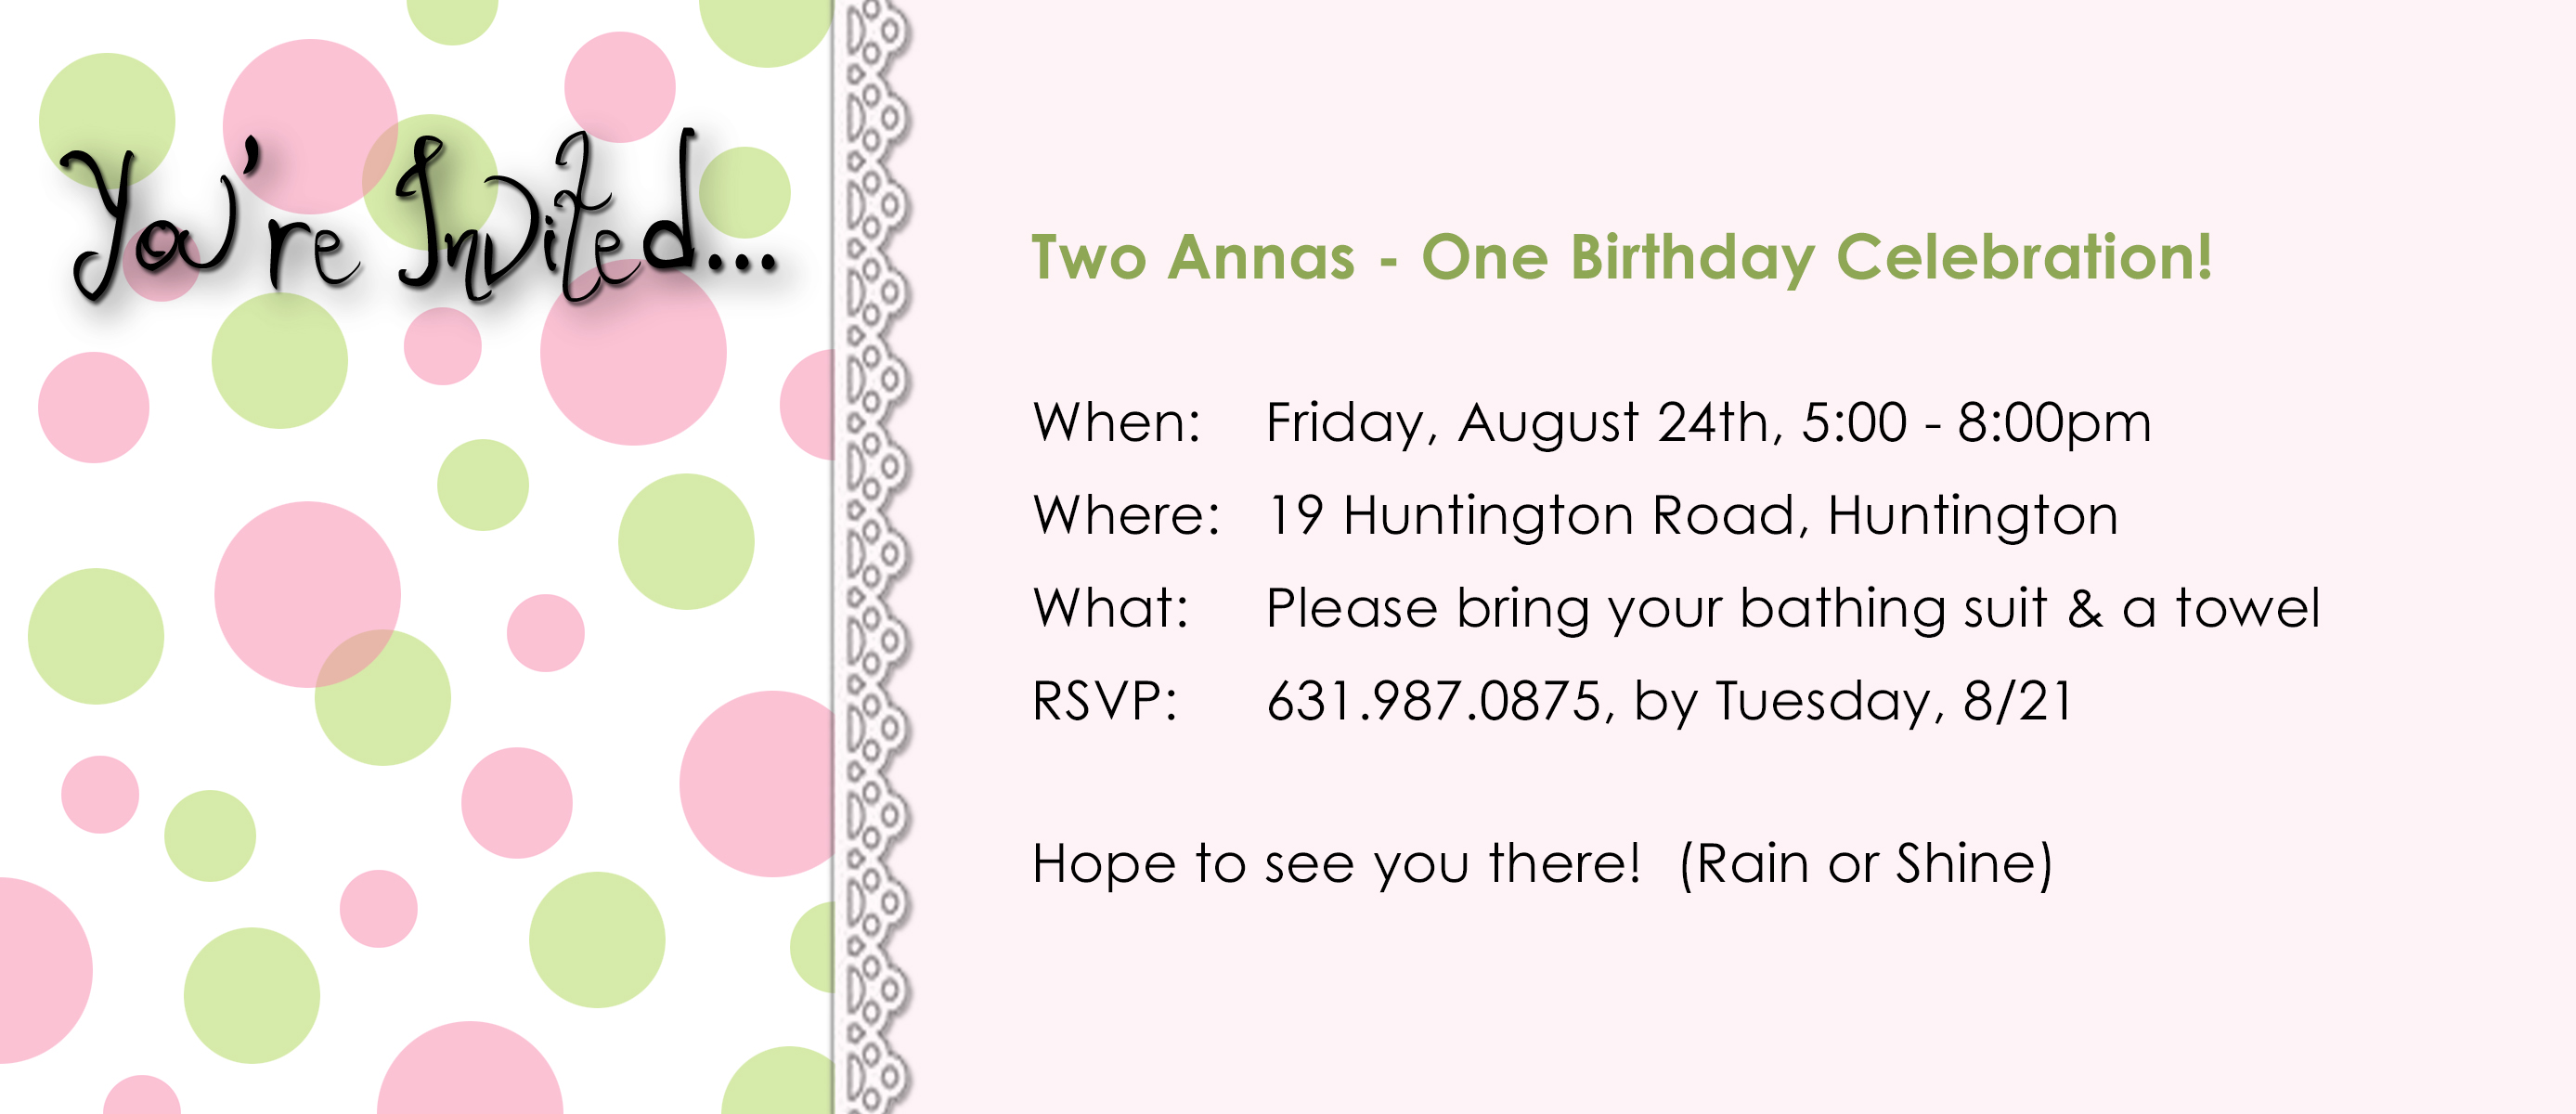 14th birthday invitations ; Birthday-Invitation-Wordings-For-1-Year-Old-and-get-ideas-how-to-make-attractive-birthday-Invitation-appearance-17